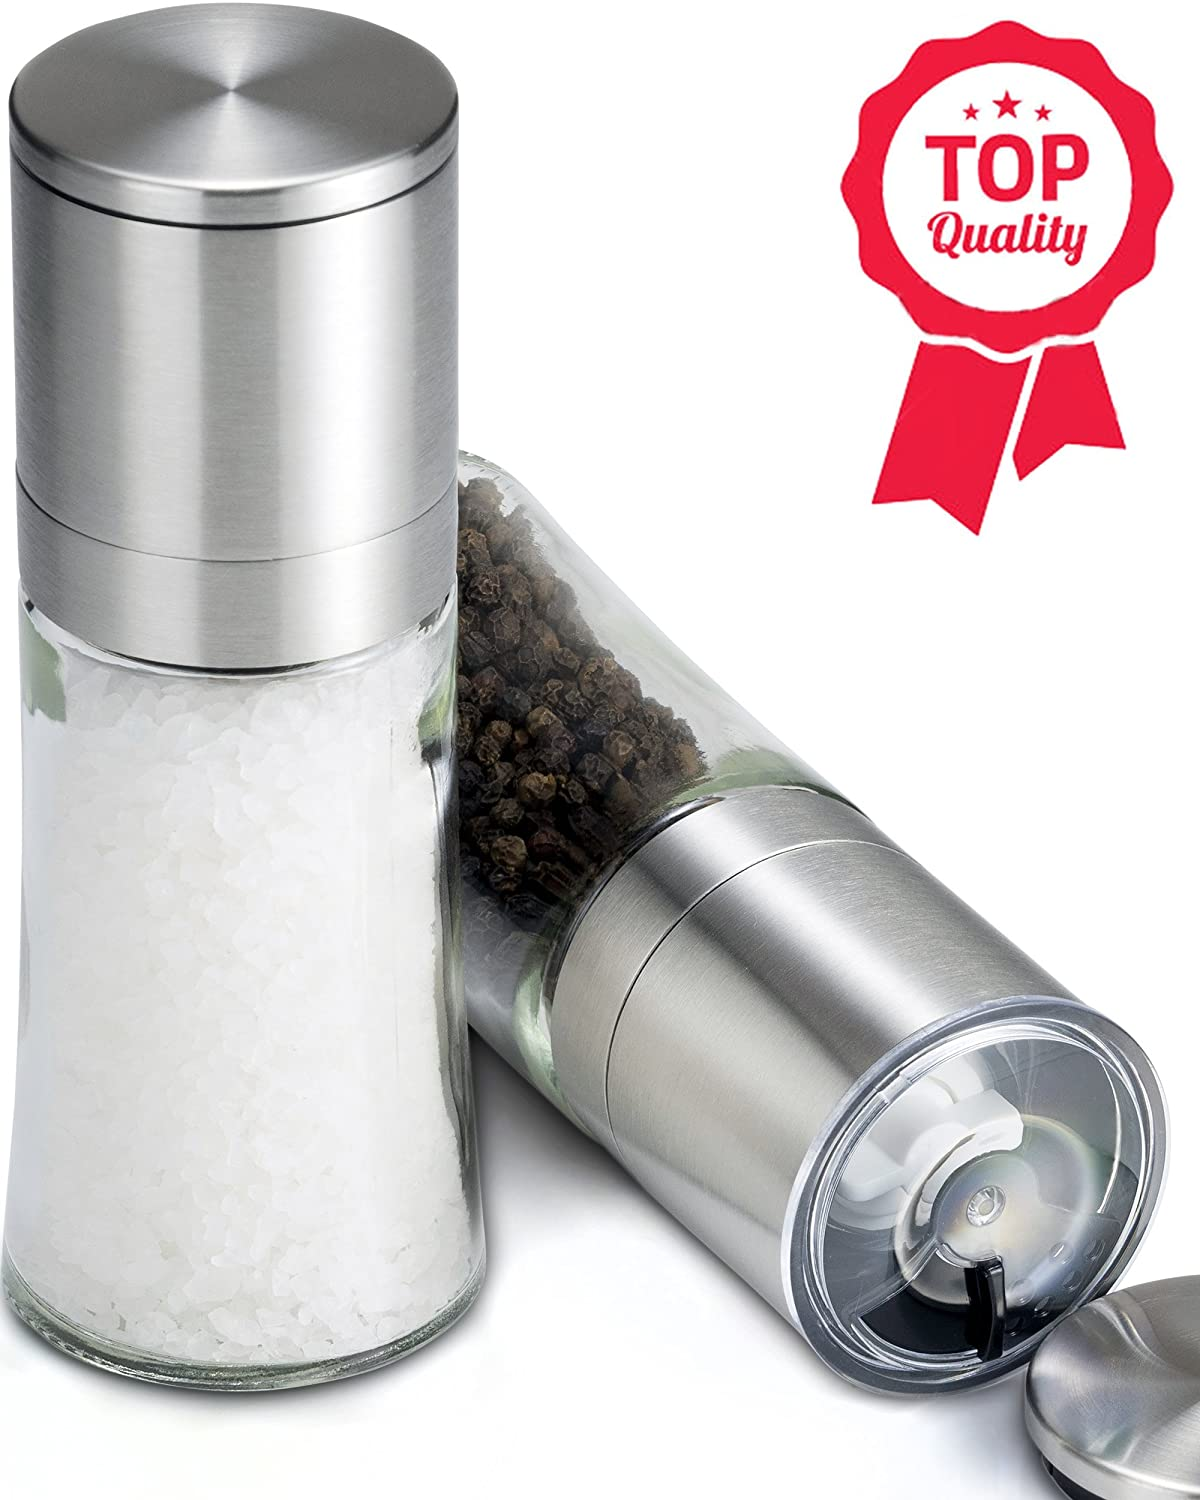 Villa Salt and Pepper Grinder Set w/ Extra Shaker Lids, Stainless Steel, Glass, Set of 2 Villa Home Goods